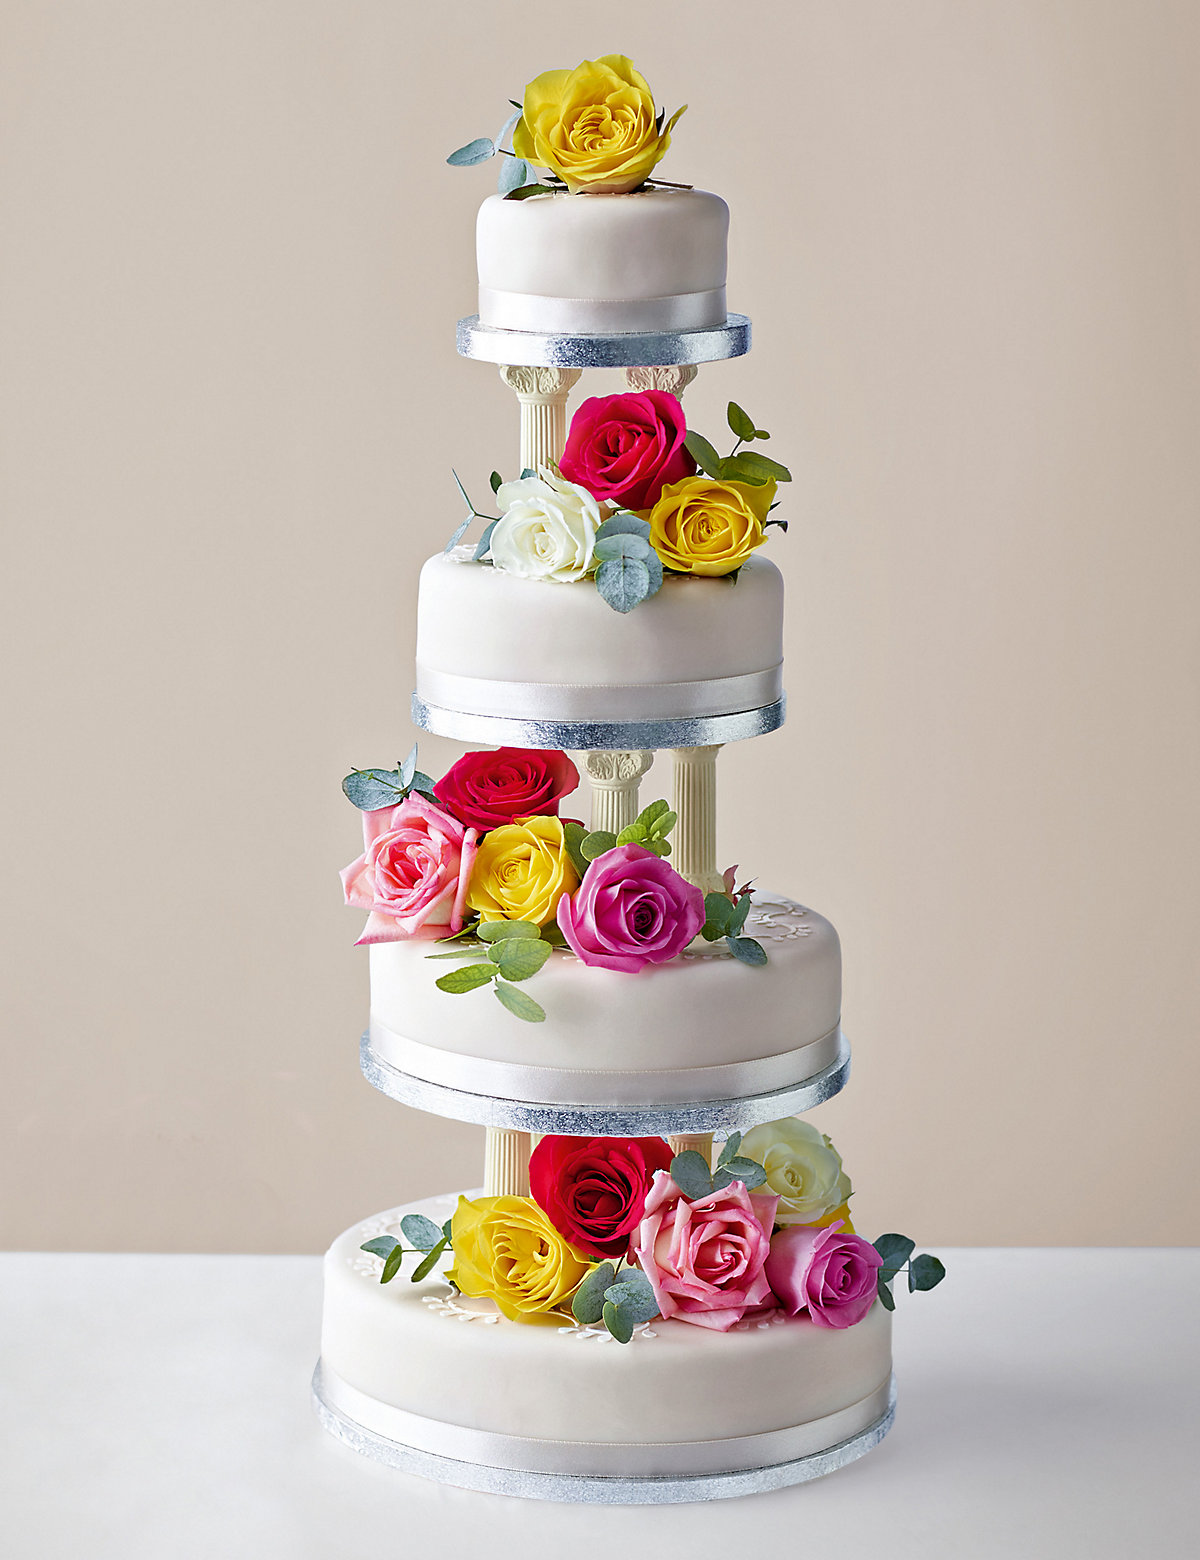 Build Your Own Traditional Wedding Cake Fruit Sponge Or Chocolate